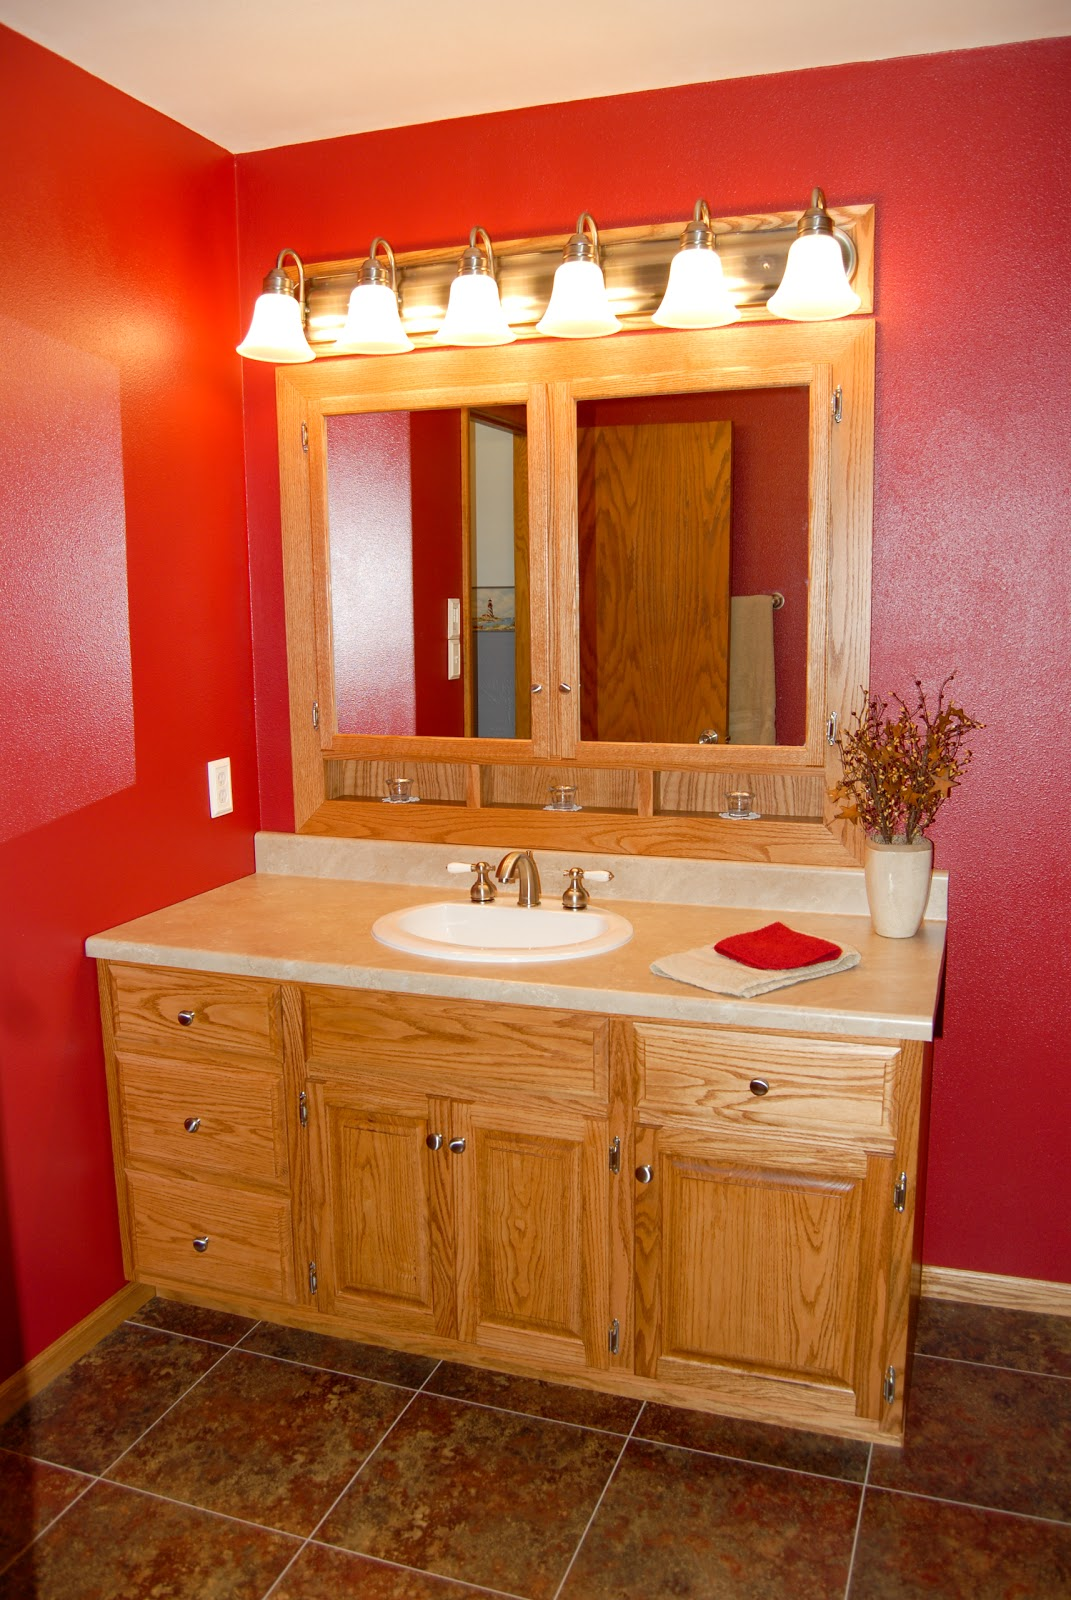 Lg custom woodworking custom made oak bathroom vanity and built in medicine cabinet - Custom made cabinet ...